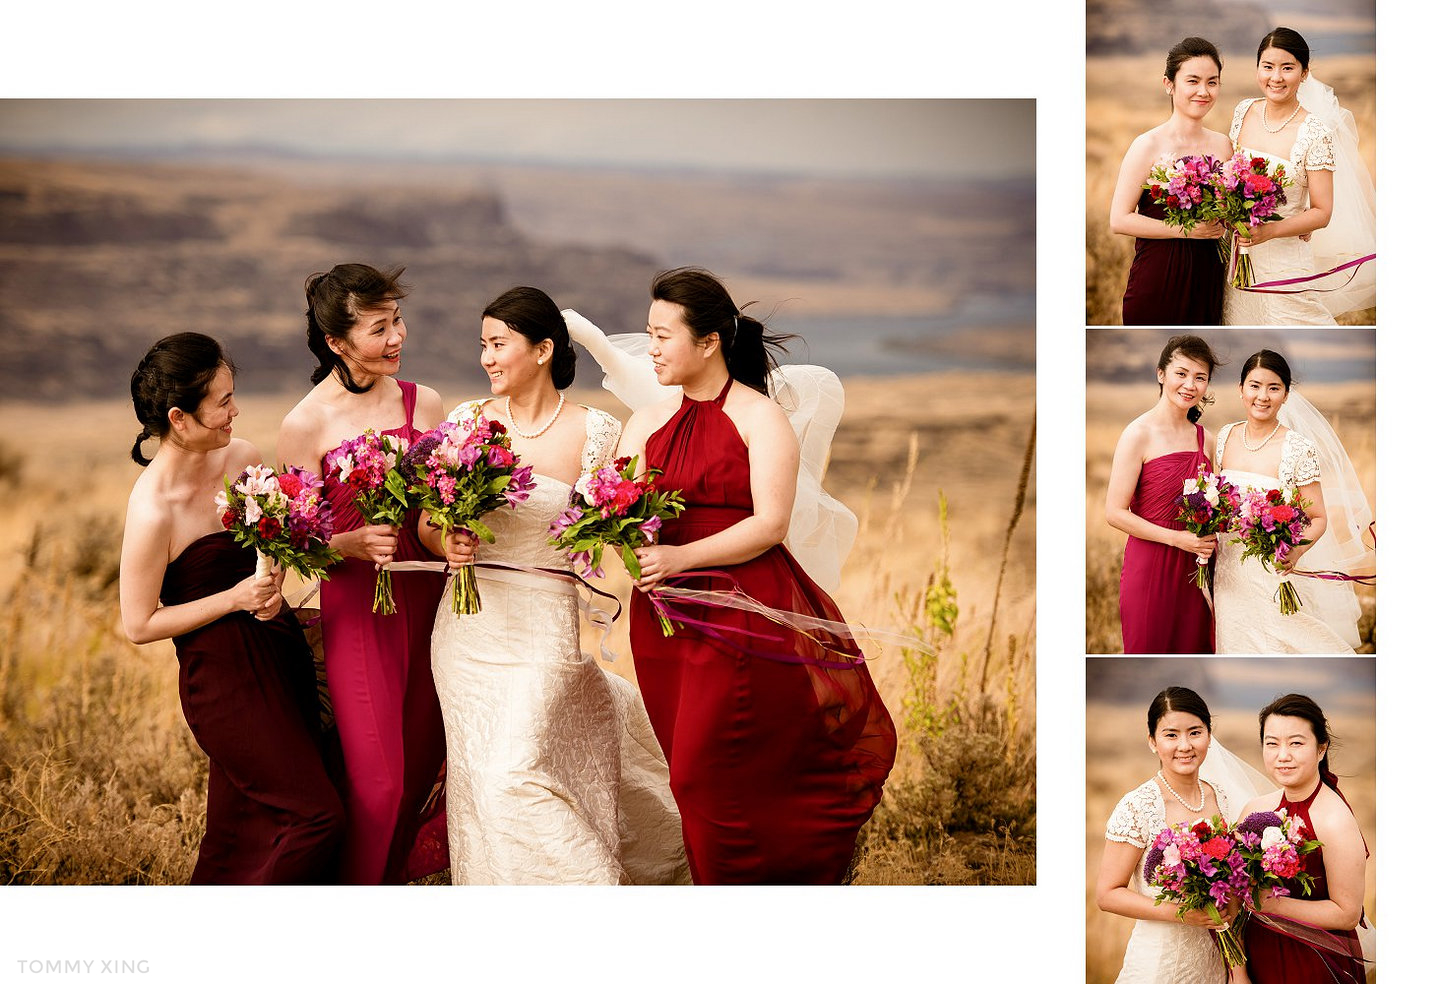 Tommy Xing Photography Seattle CAVE B ESTATE WINERY wedding 西雅图酒庄婚礼07.jpg